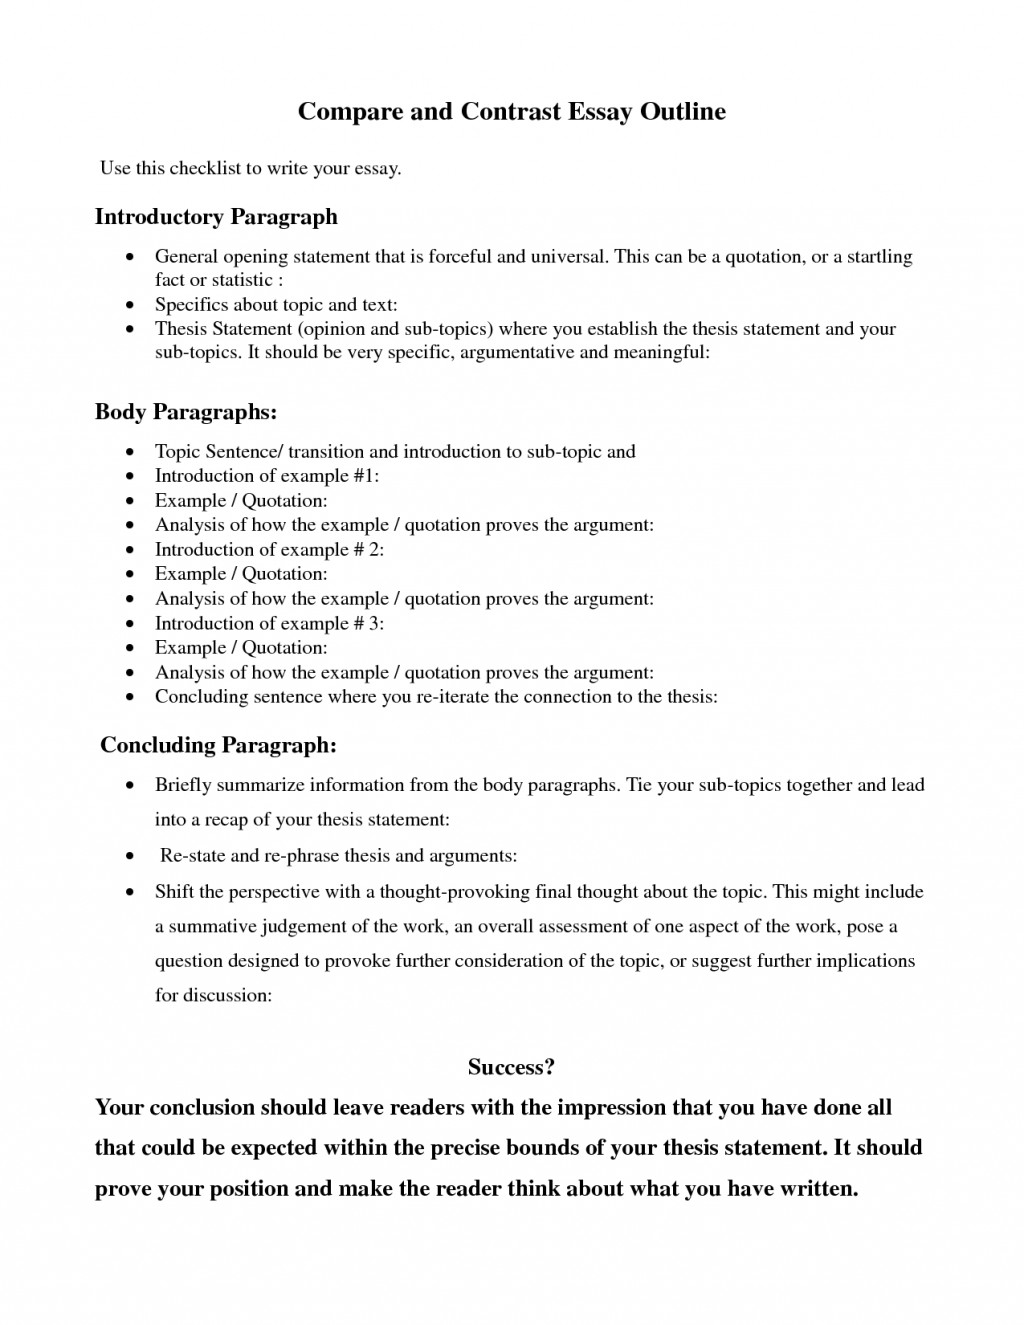 001 Essay Example Comparison And Awful Contrast Rubric Compare Template Word Large